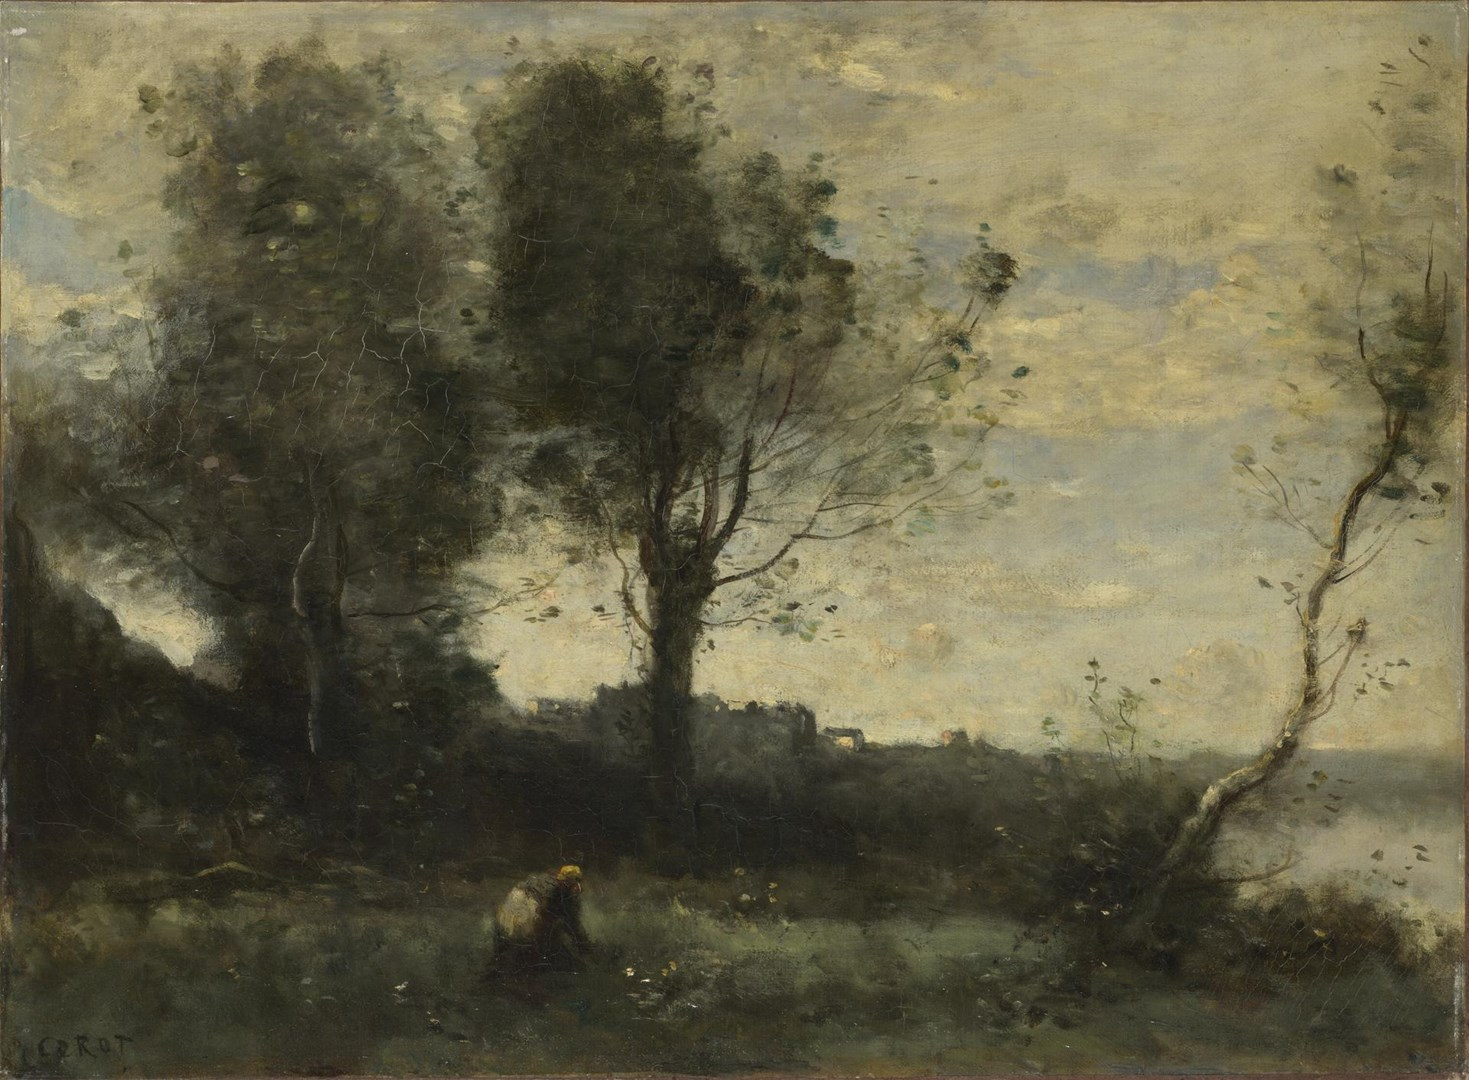 The Wood Gatherer by Jean-Baptiste-Camille Corot